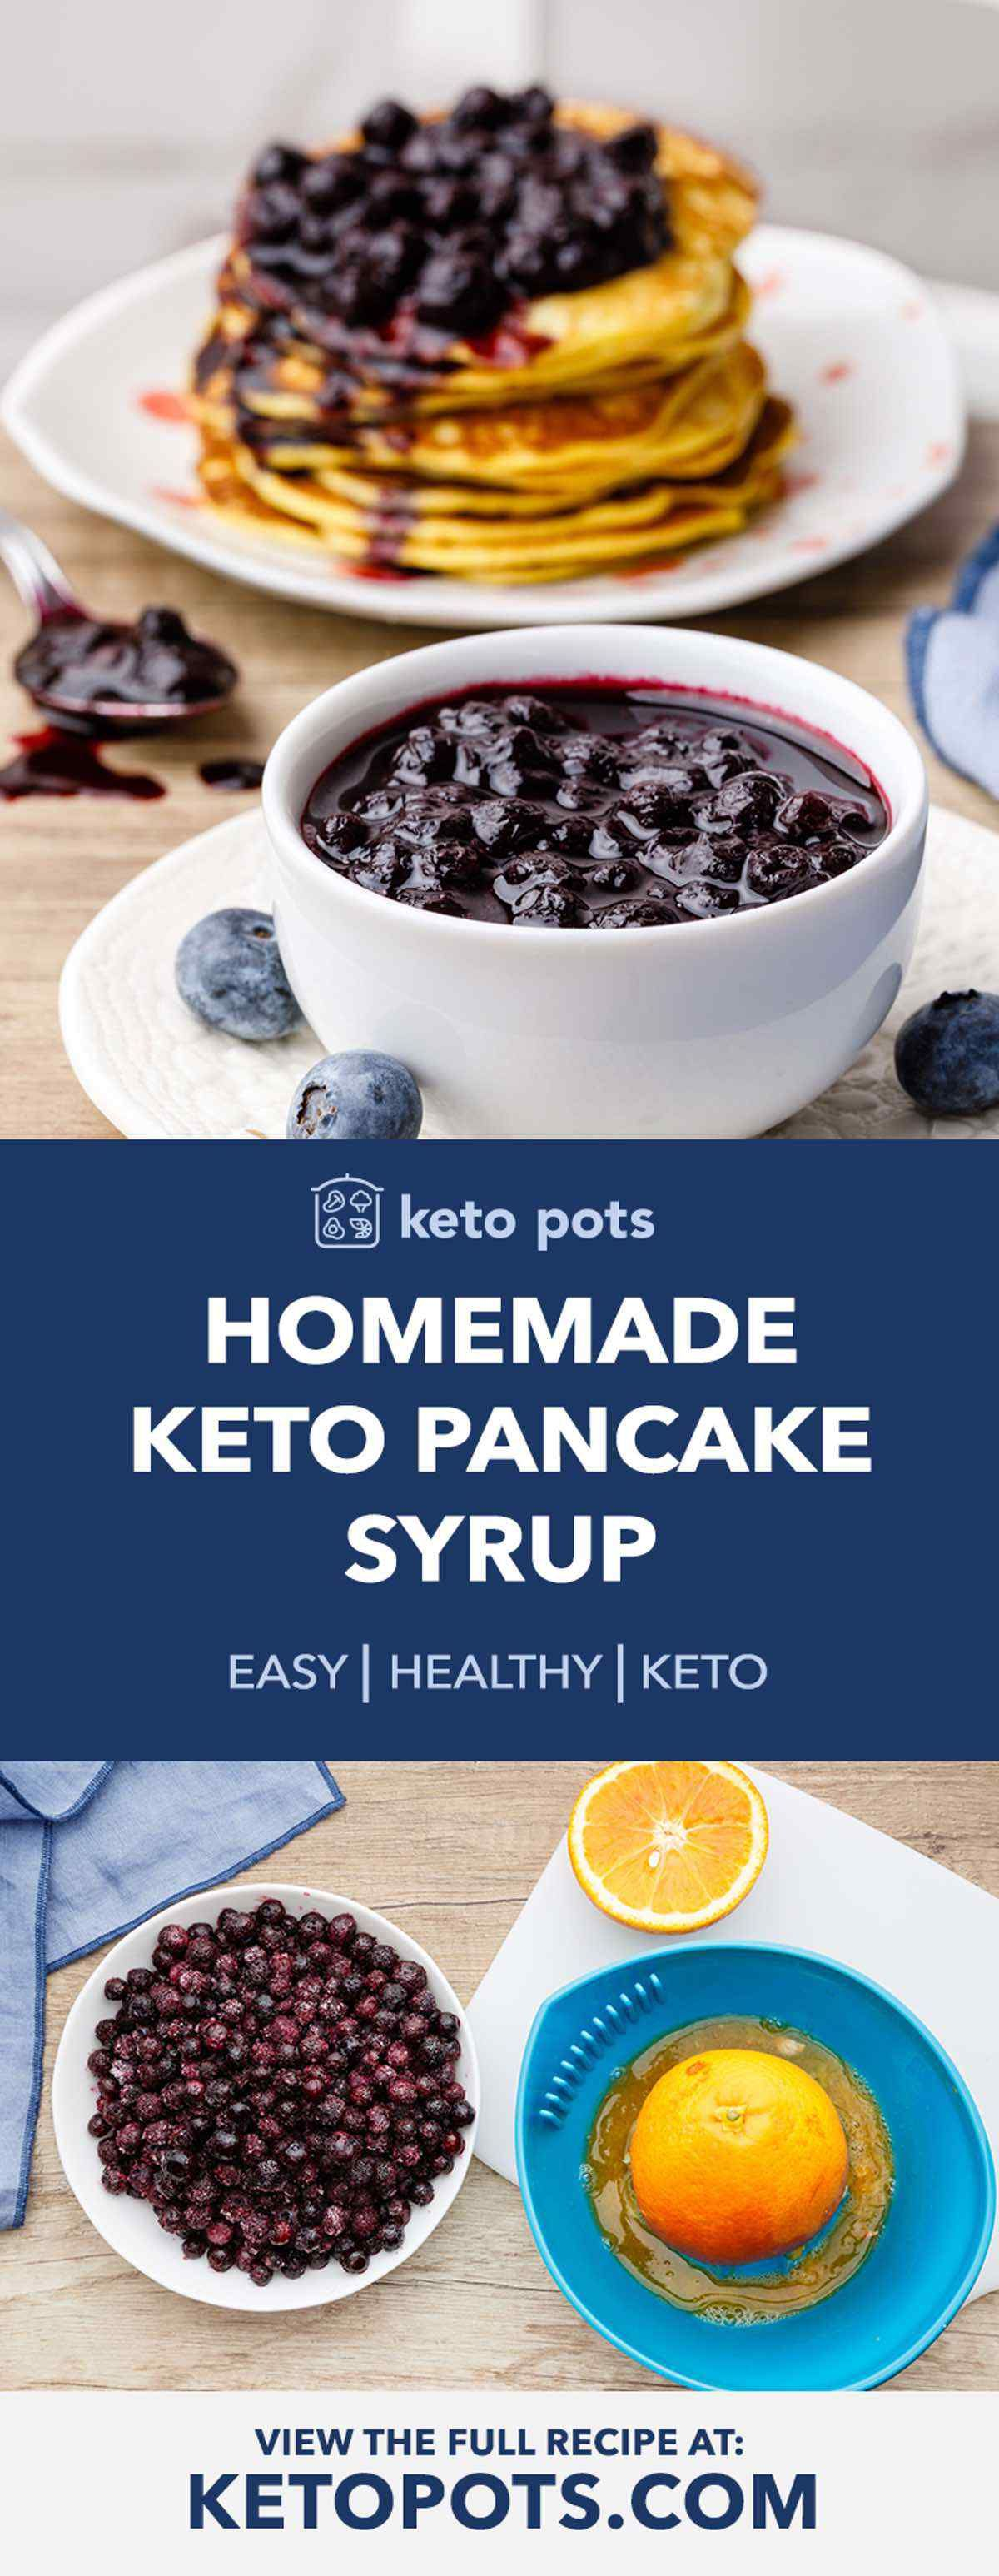 The Best Homemade Keto Pancake Syrup (Low Carb) - Keto Pots